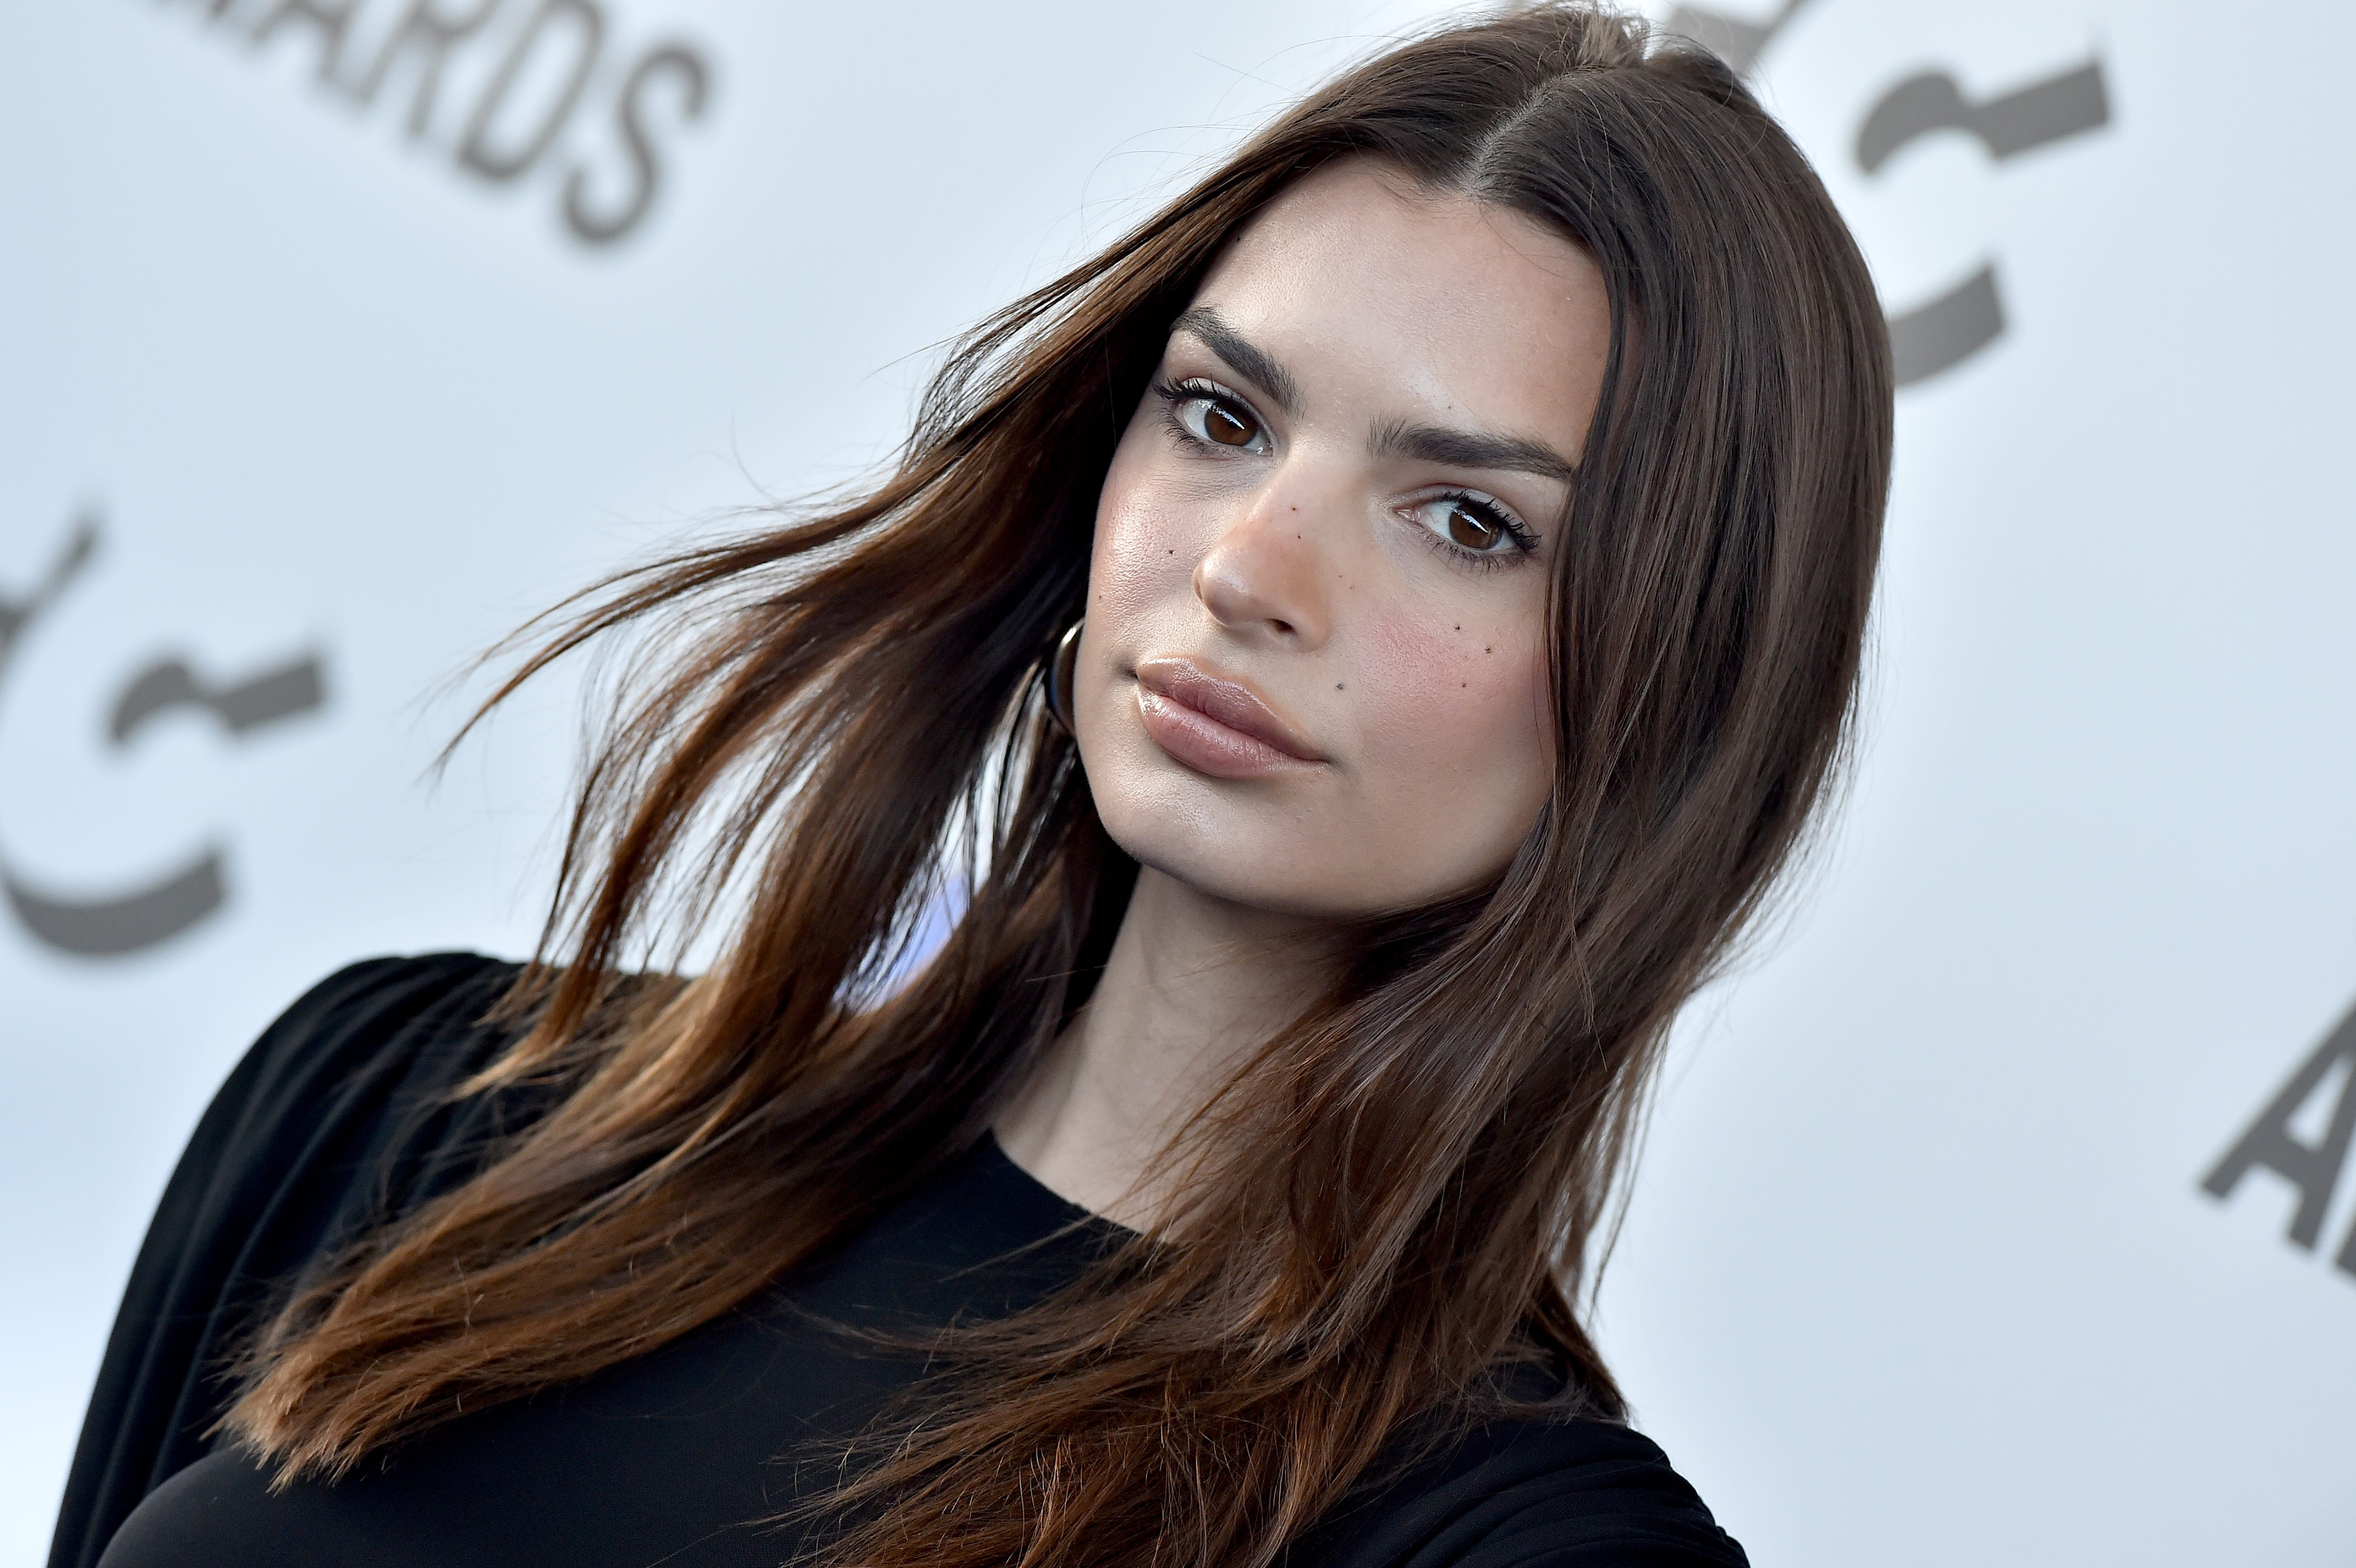 Emily Ratajkowski Makes an Important Point About Consent in Art   Observer